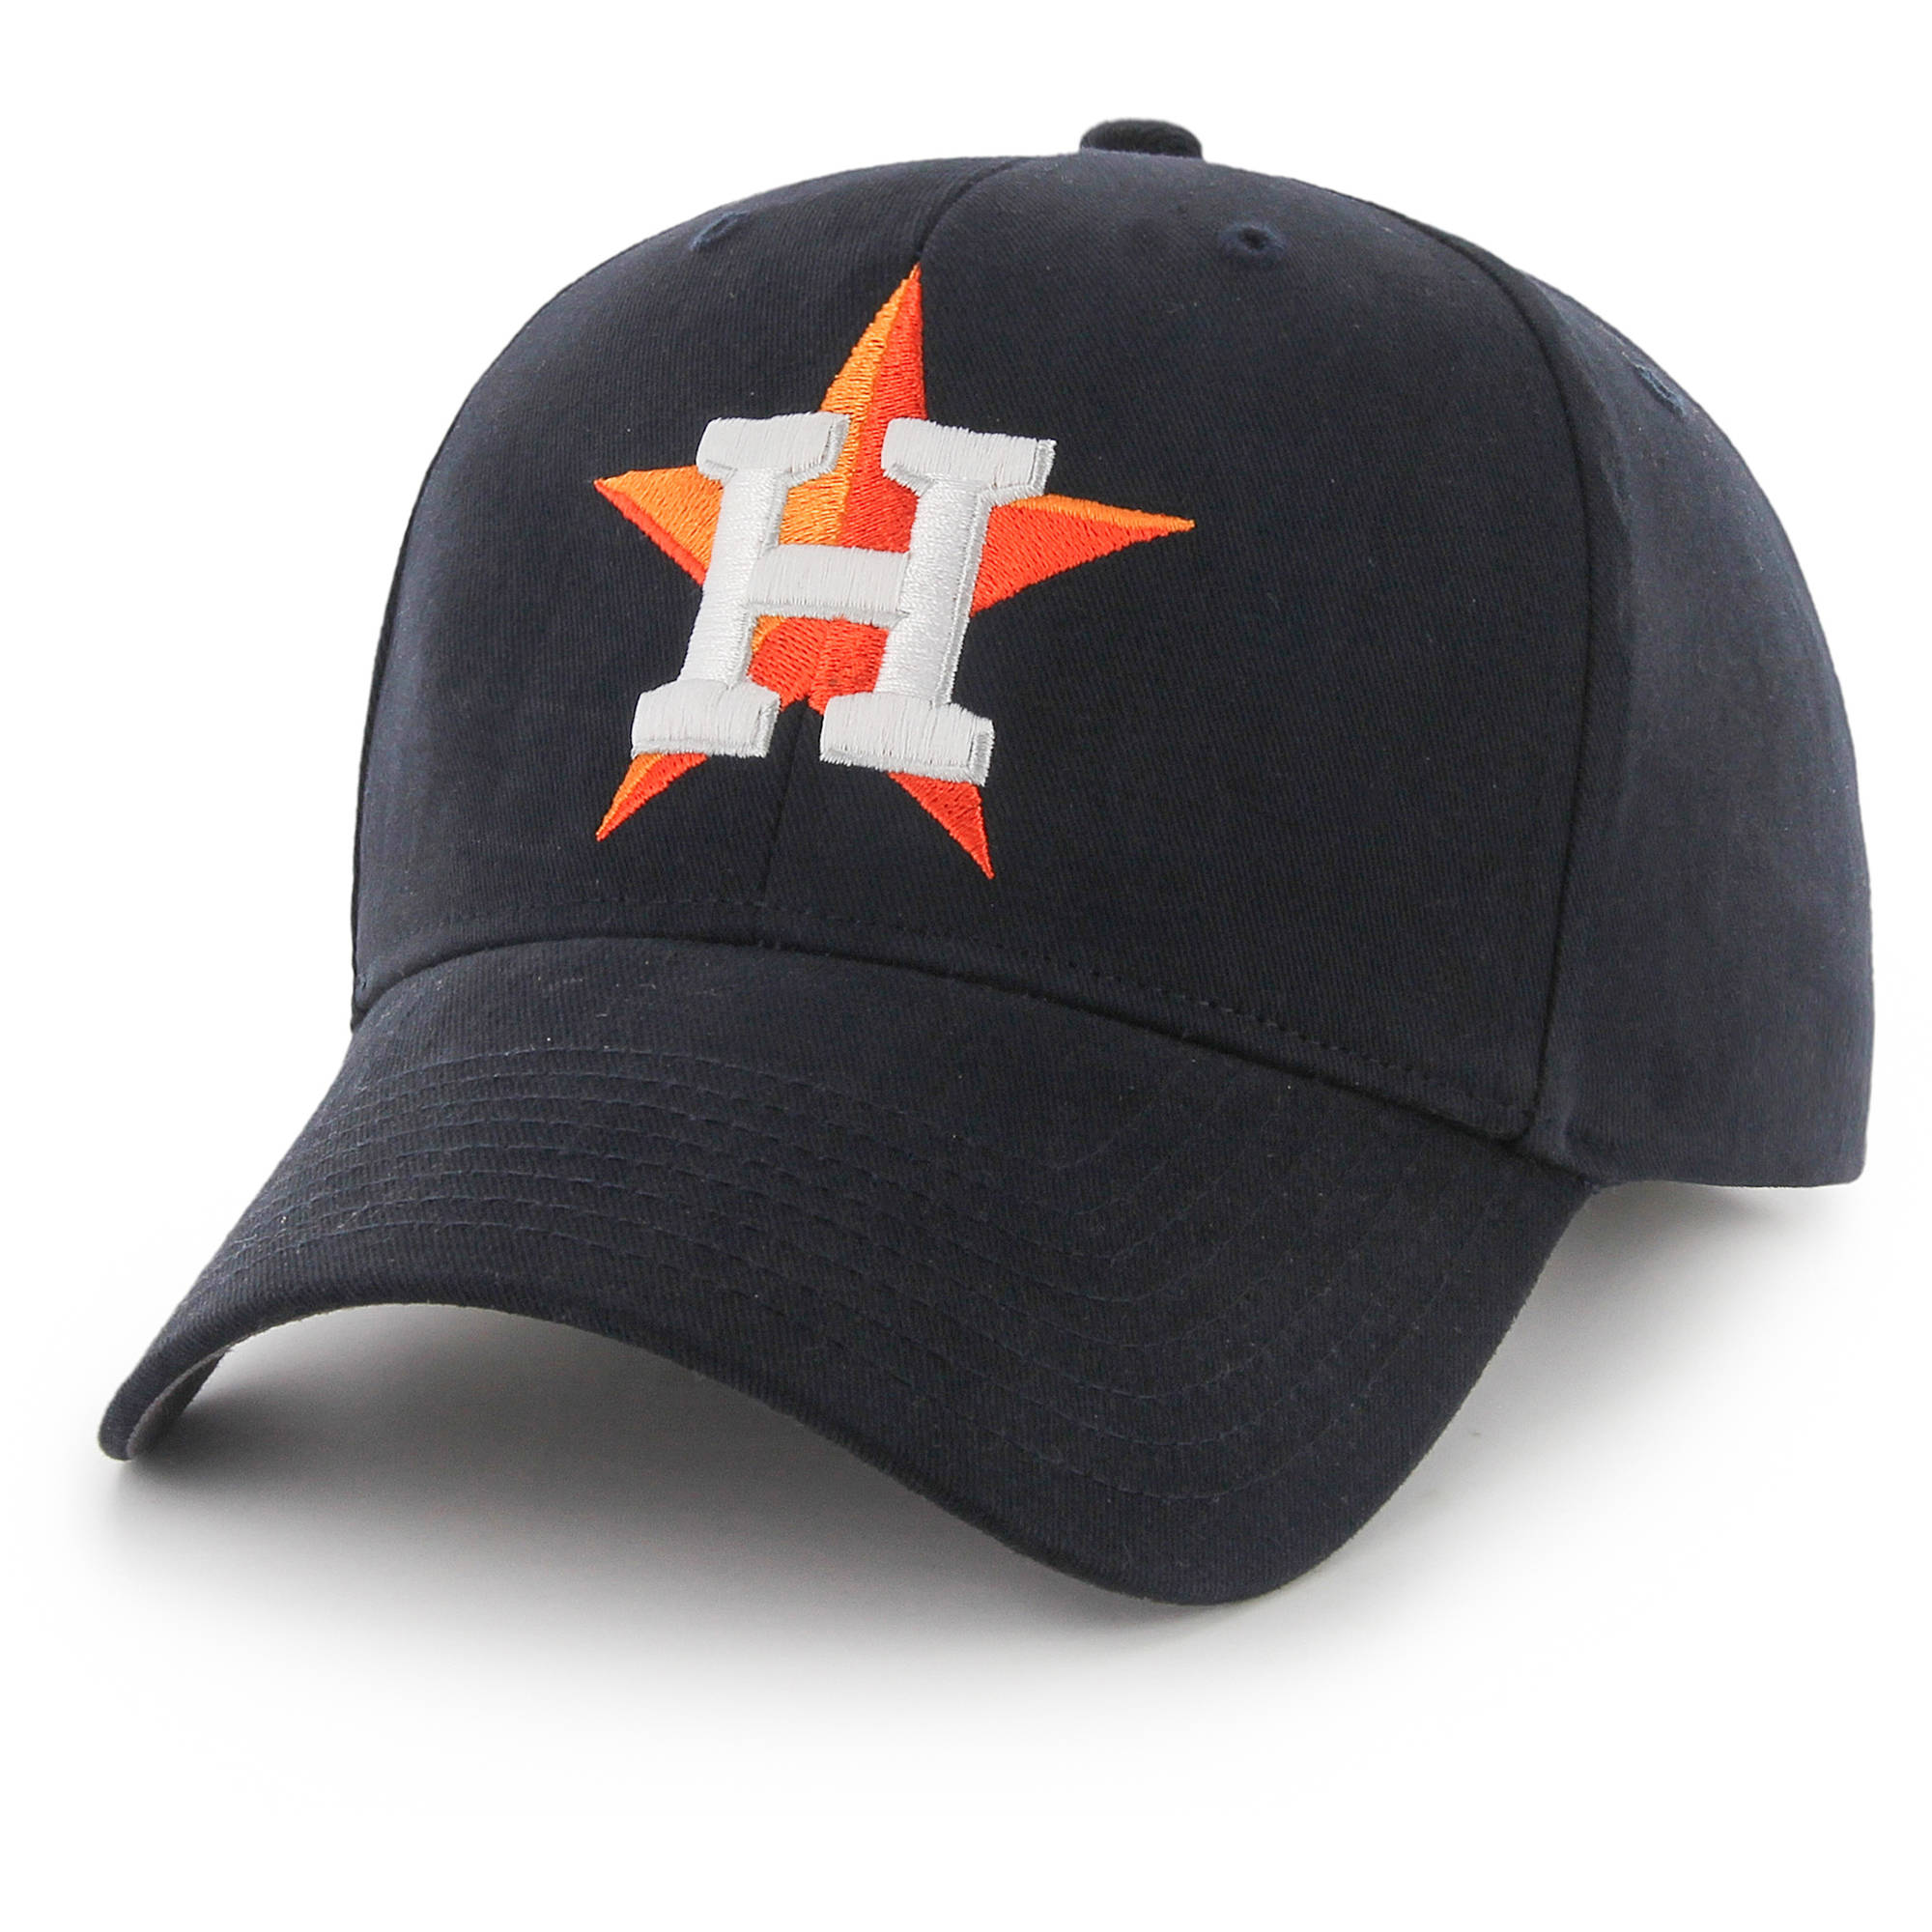 Fan Favorite - MLB Basic Cap, Houston Astros